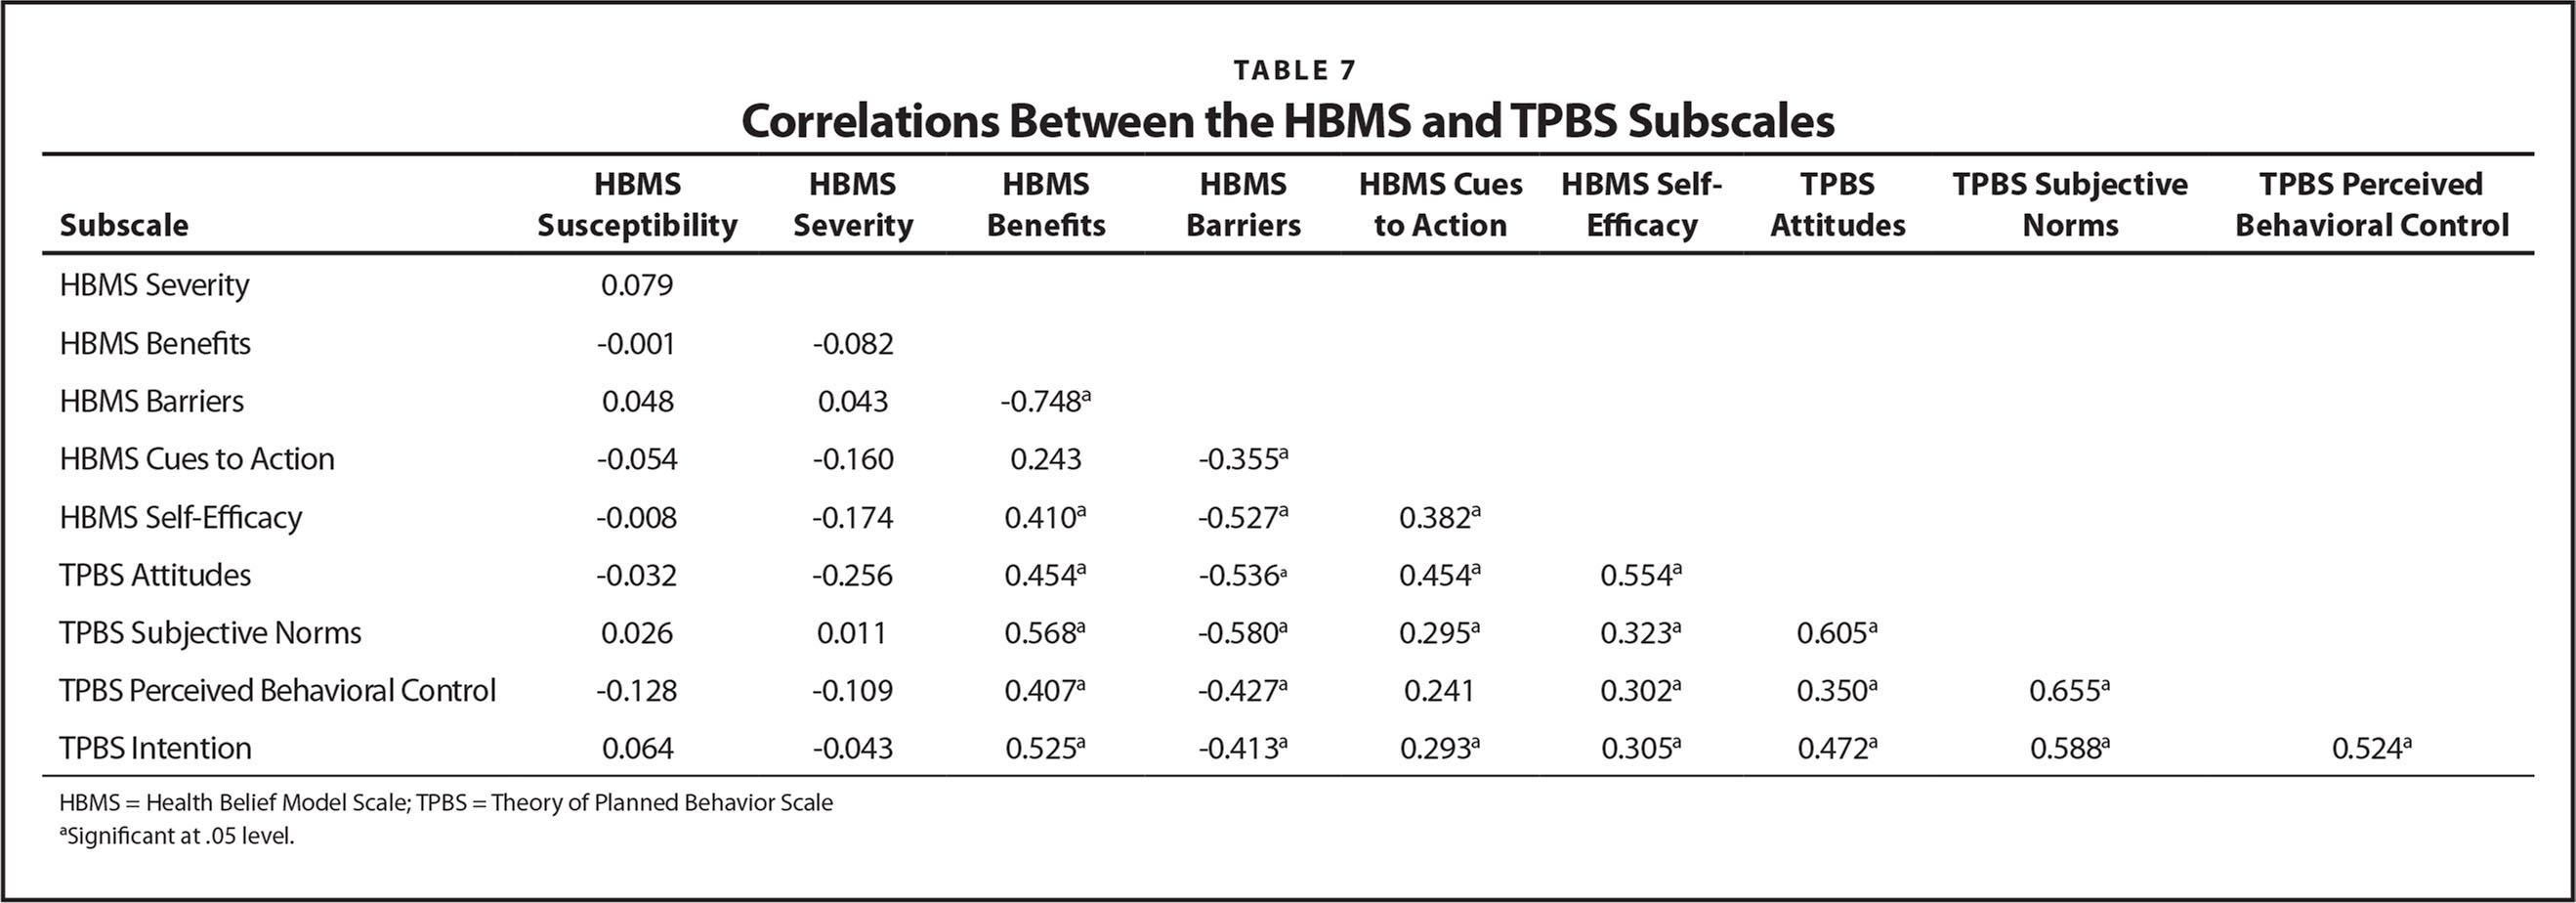 Correlations Between the HBMS and TPBS Subscales